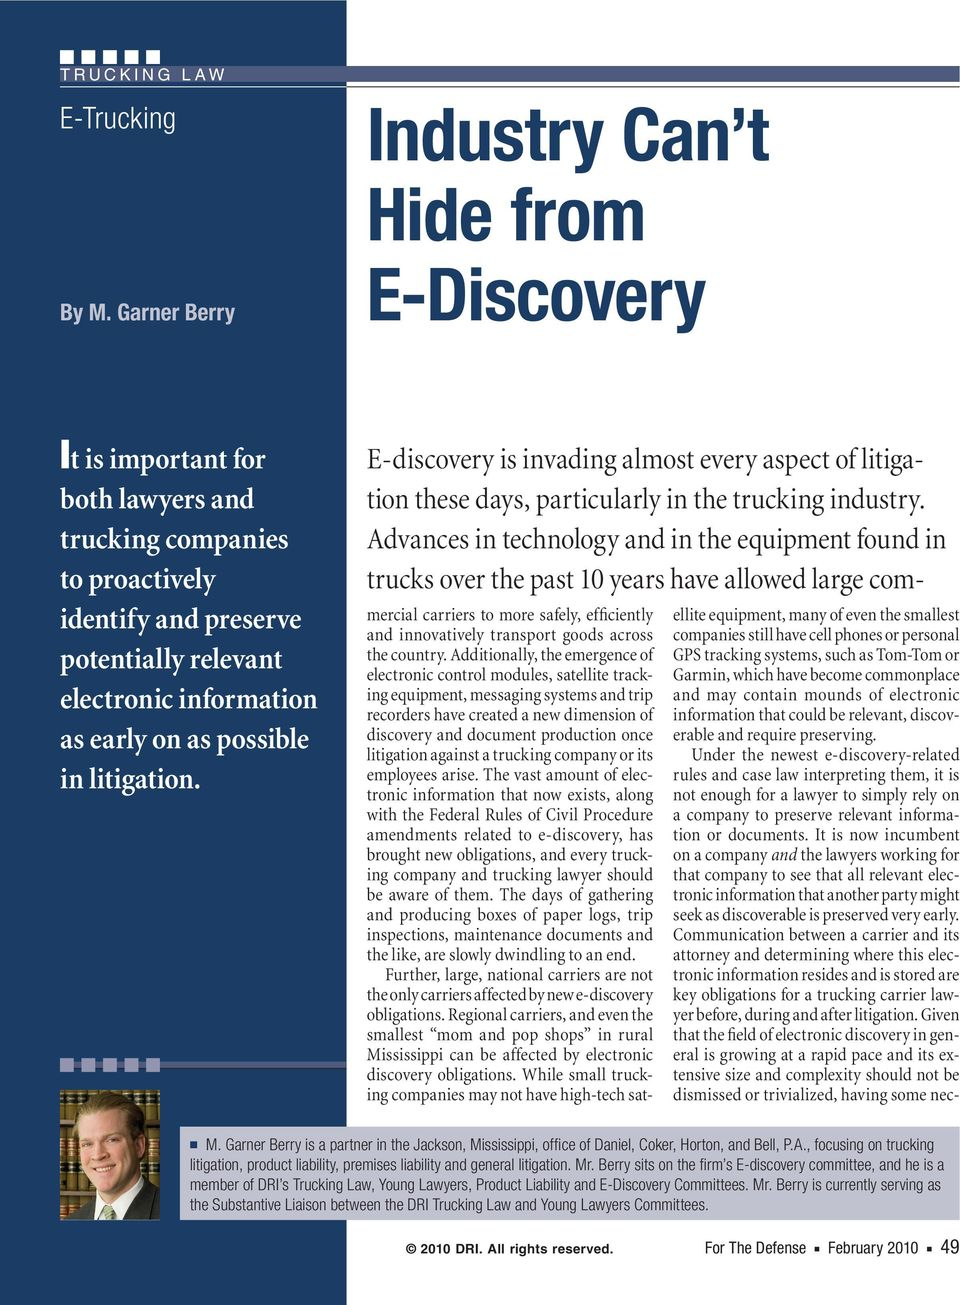 as possible in litigation. E-discovery is invading almost every aspect of litigation these days, particularly in the trucking industry.